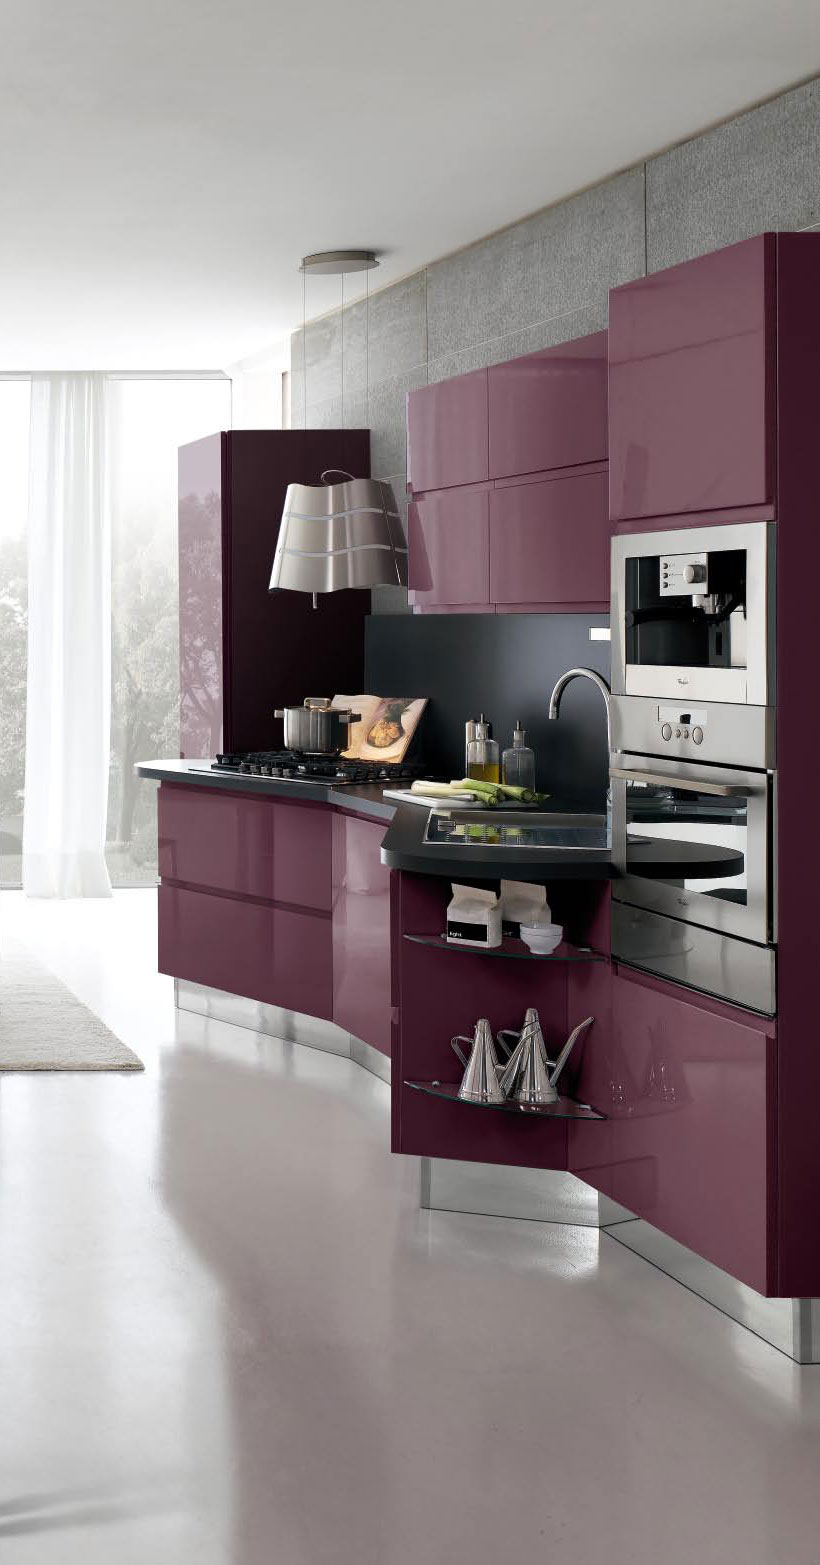 What is new in kitchen design finishing touch interiors for Kitchen cabinets modern style